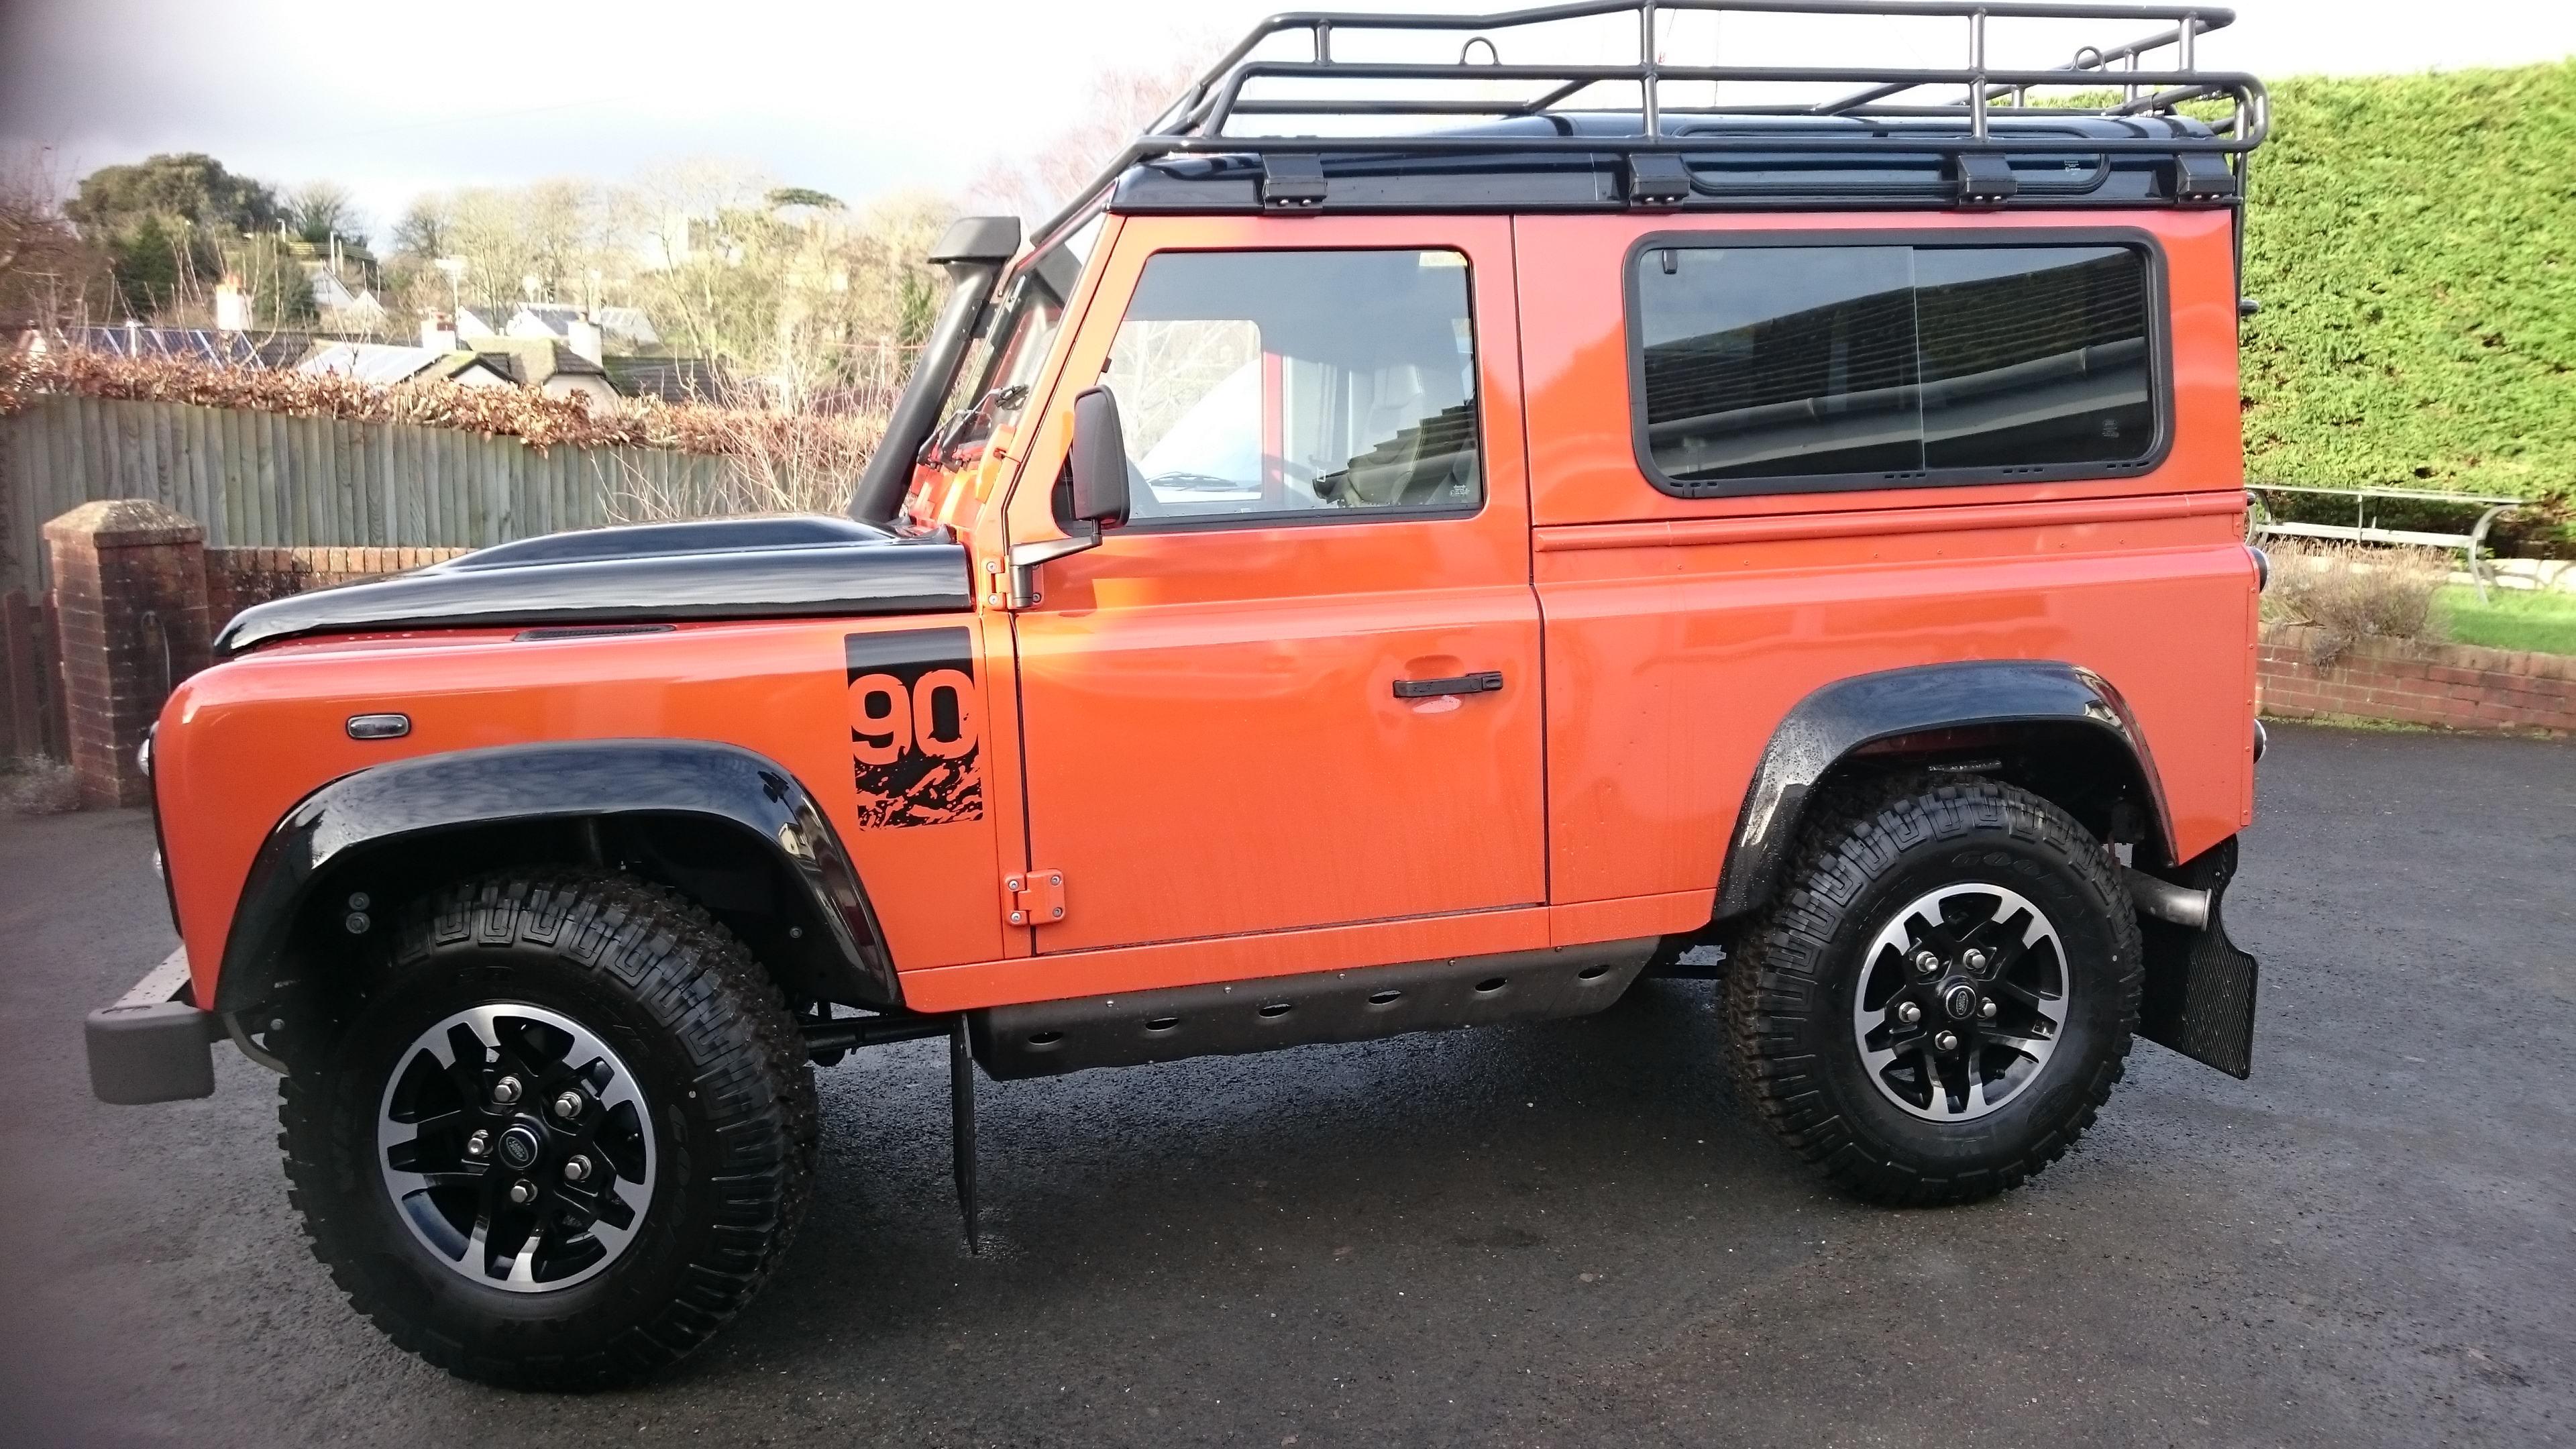 Landy 90 auto window tint Tinting Express Barnstaple Devon